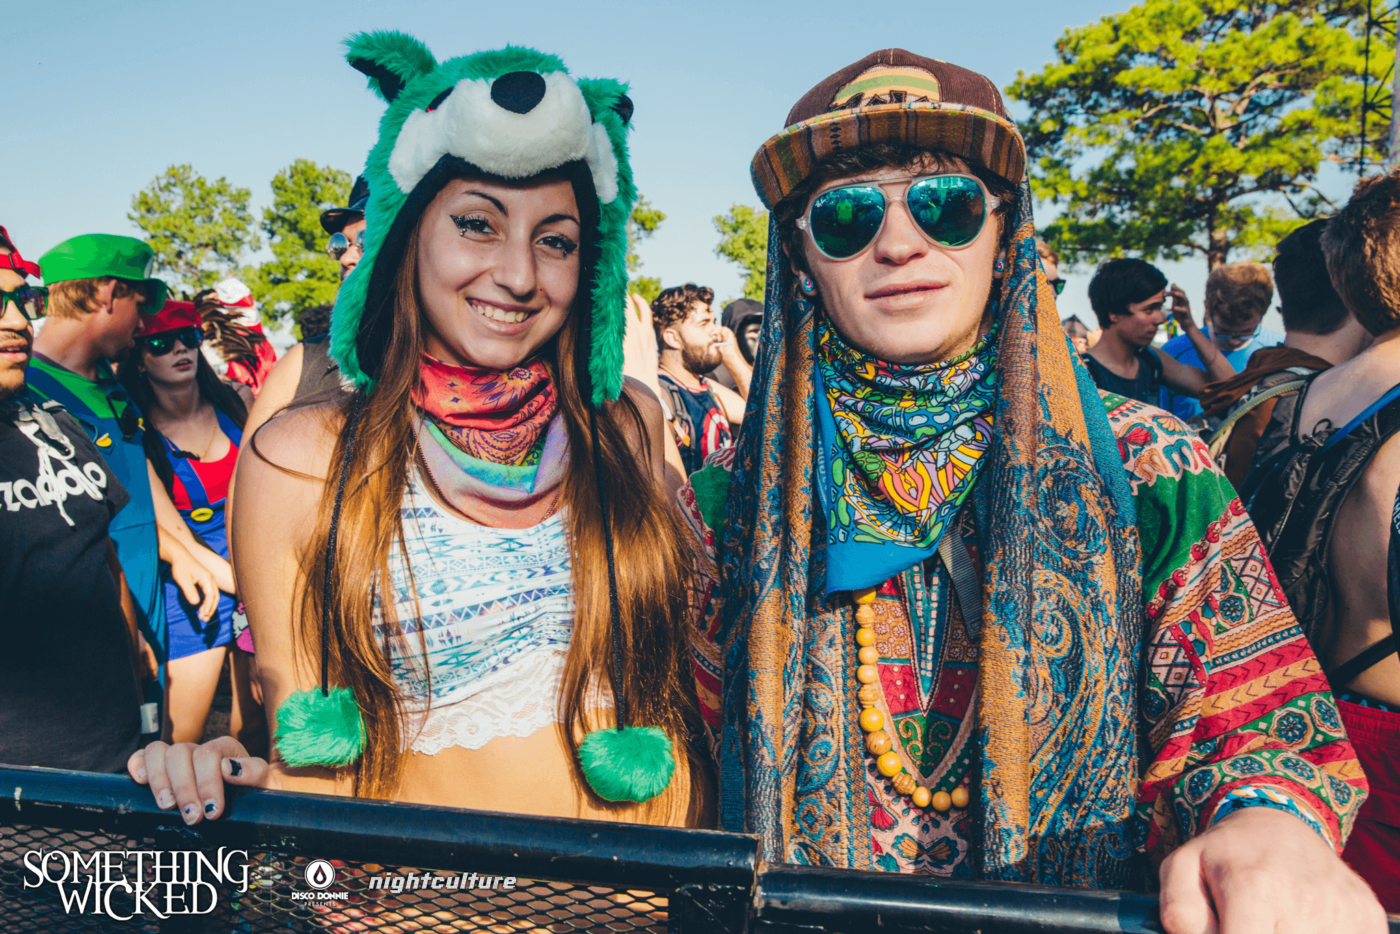 spirit hood fans at something wicked